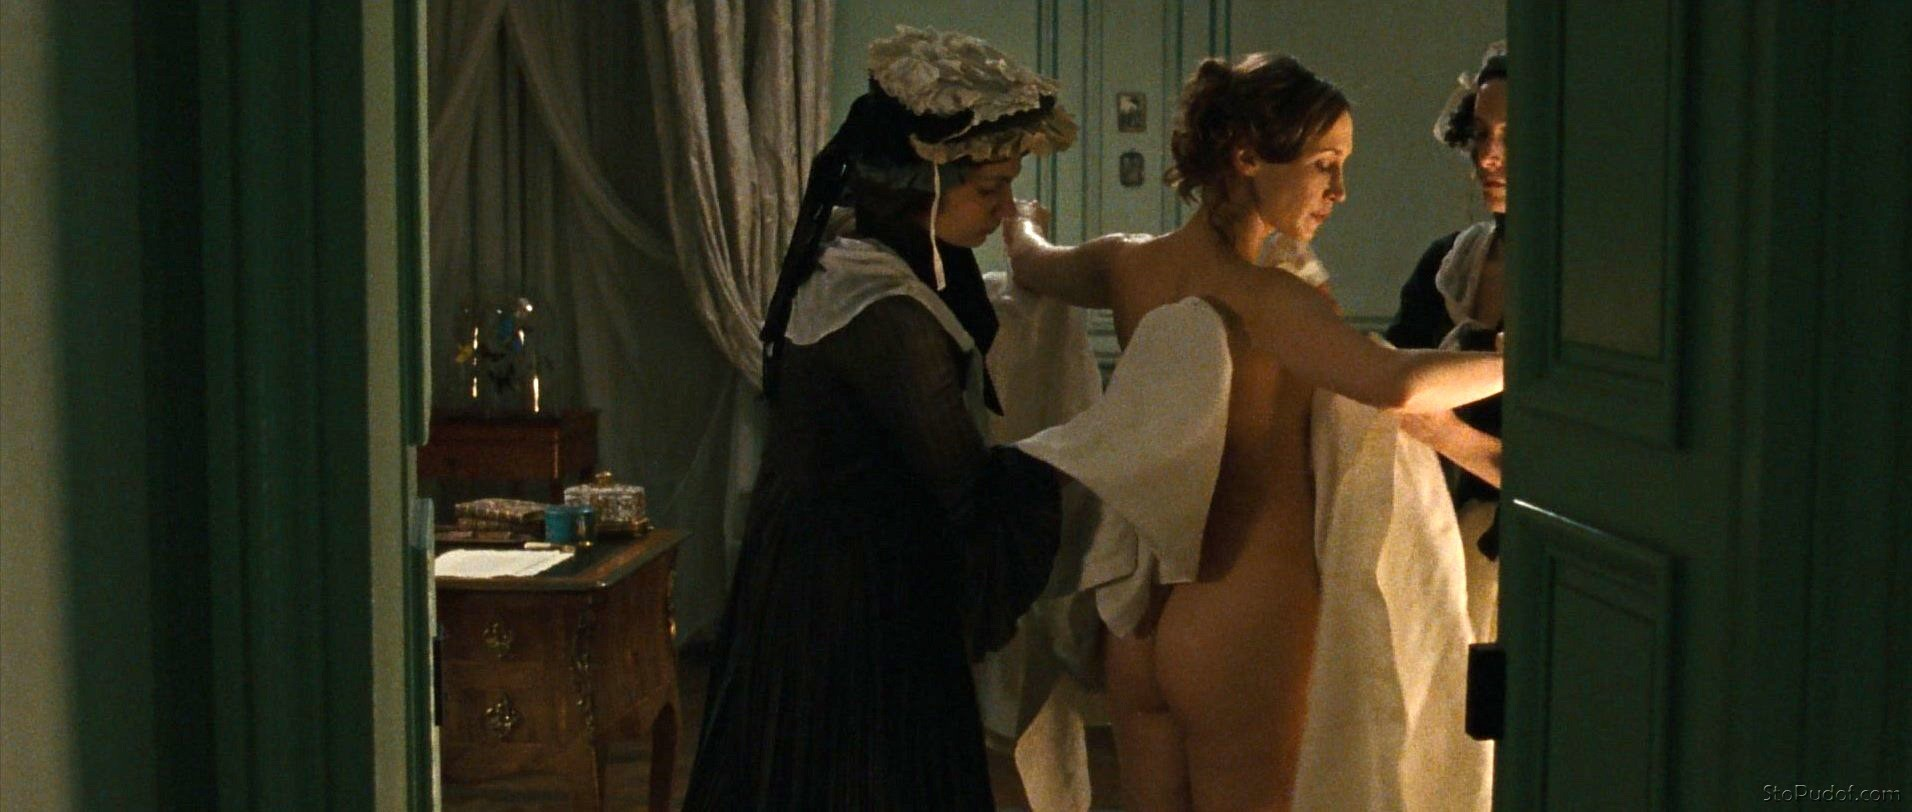 real nude photo of Vera Farmiga - UkPhotoSafari